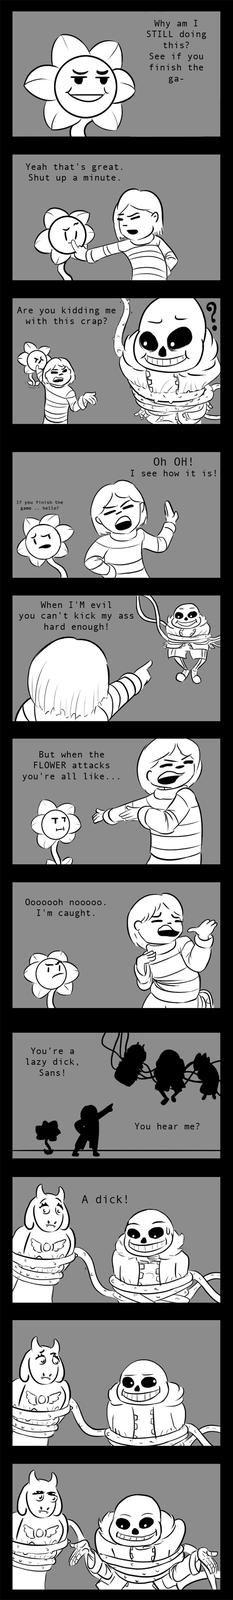 Even Frisk is sick of your crap, Sans - comic